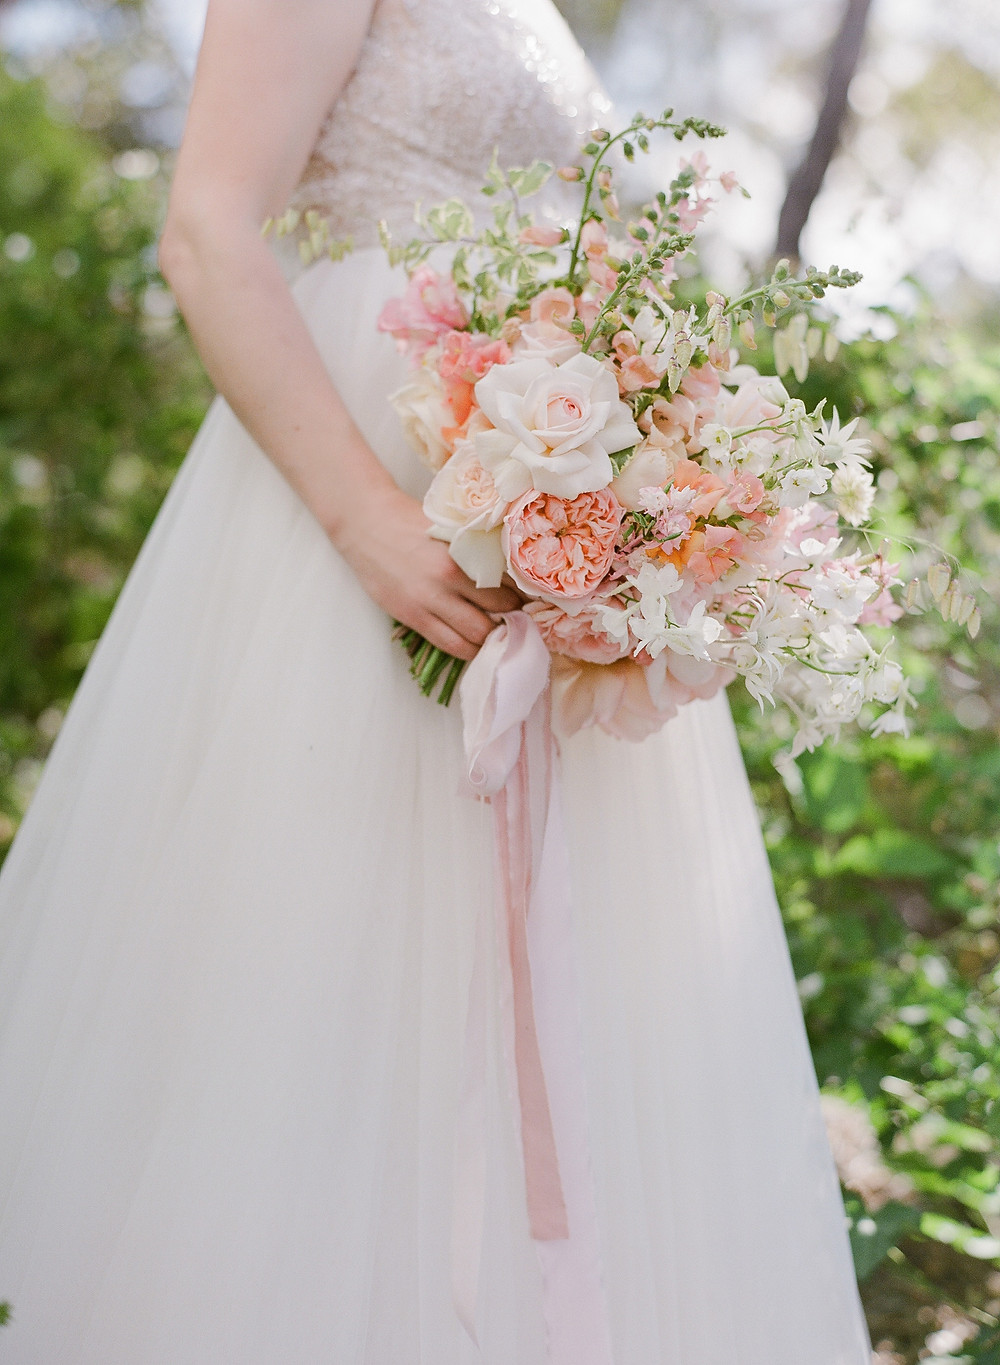 Spring bridal bouquet grown and designed by Helen Leighton of Riverdale Farm